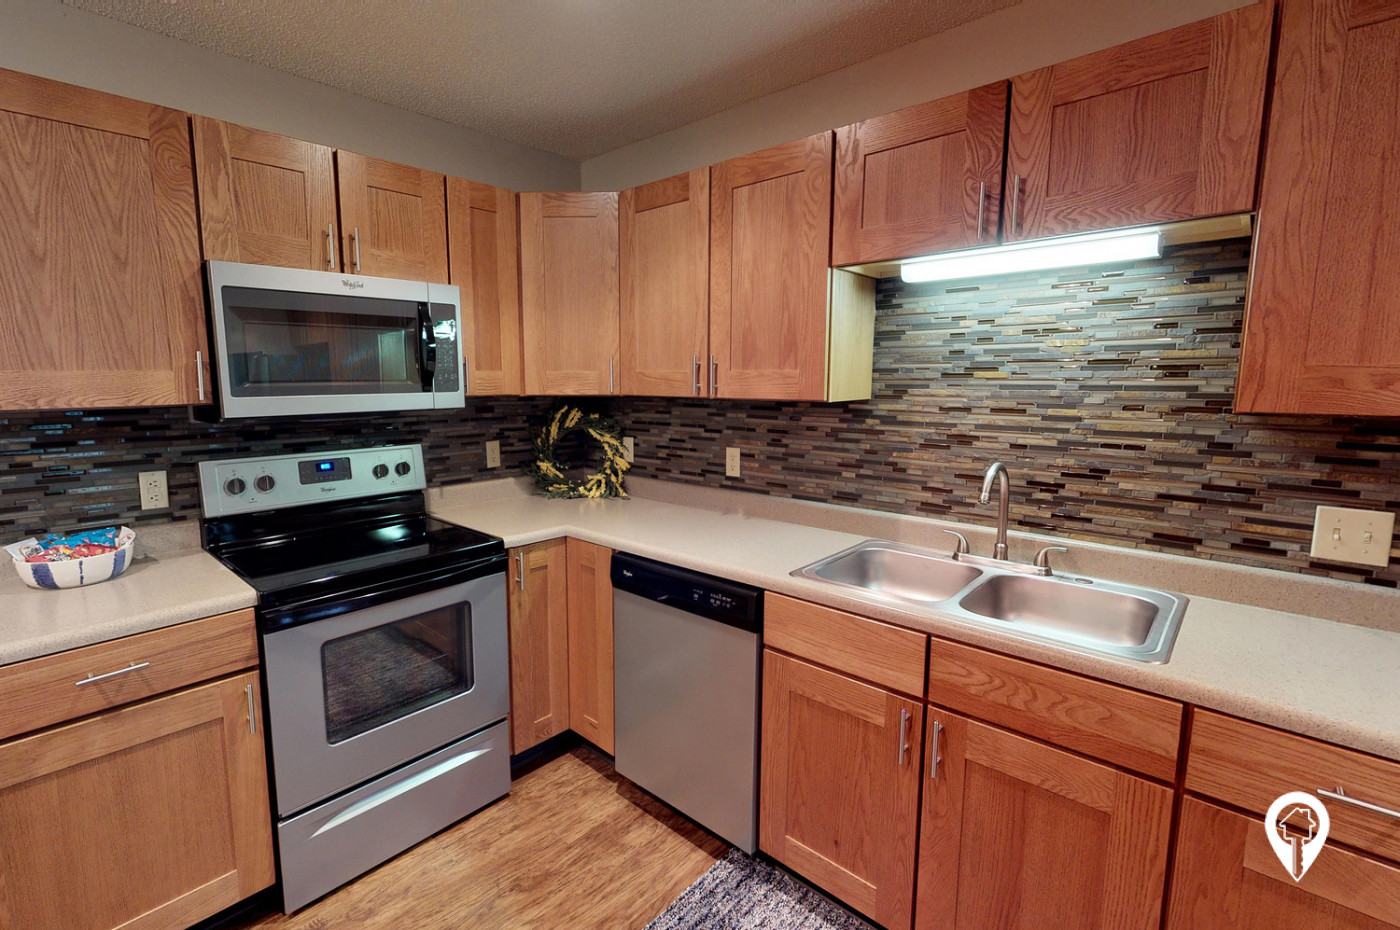 Oxbow-Park-Apartments-Beautiful-updates